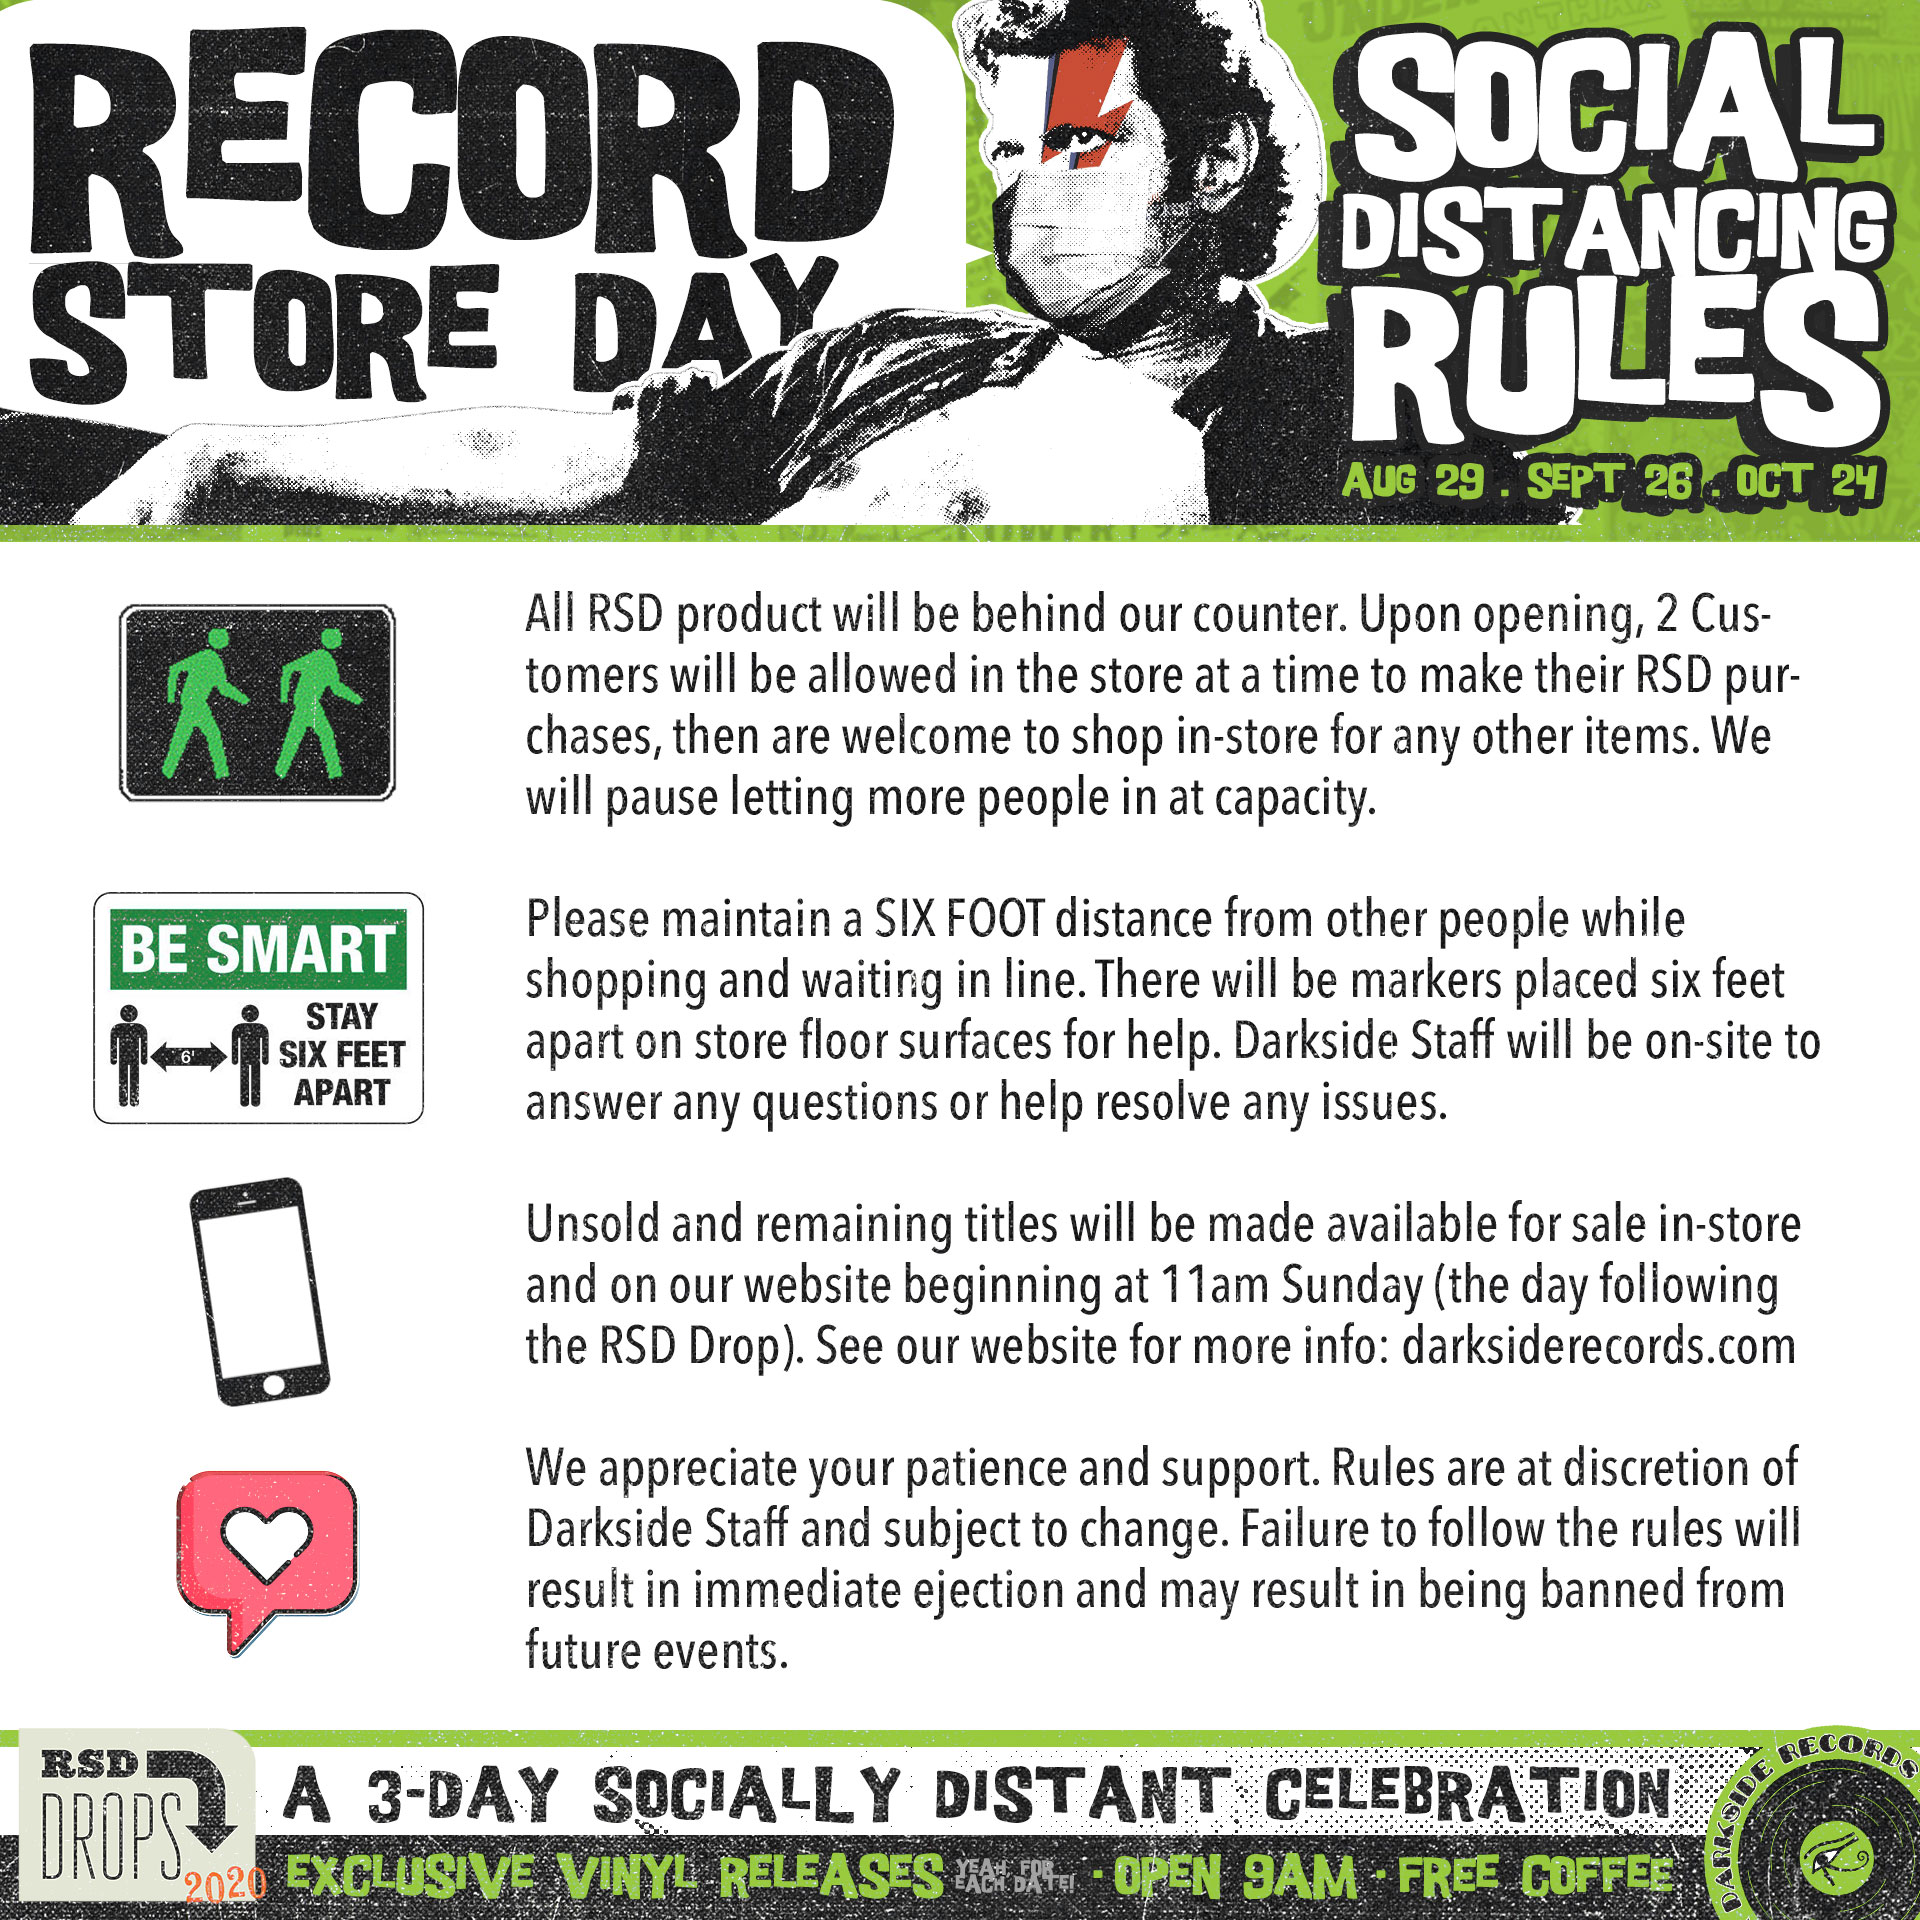 Social distancing rules for record store day and black friday at darkside records